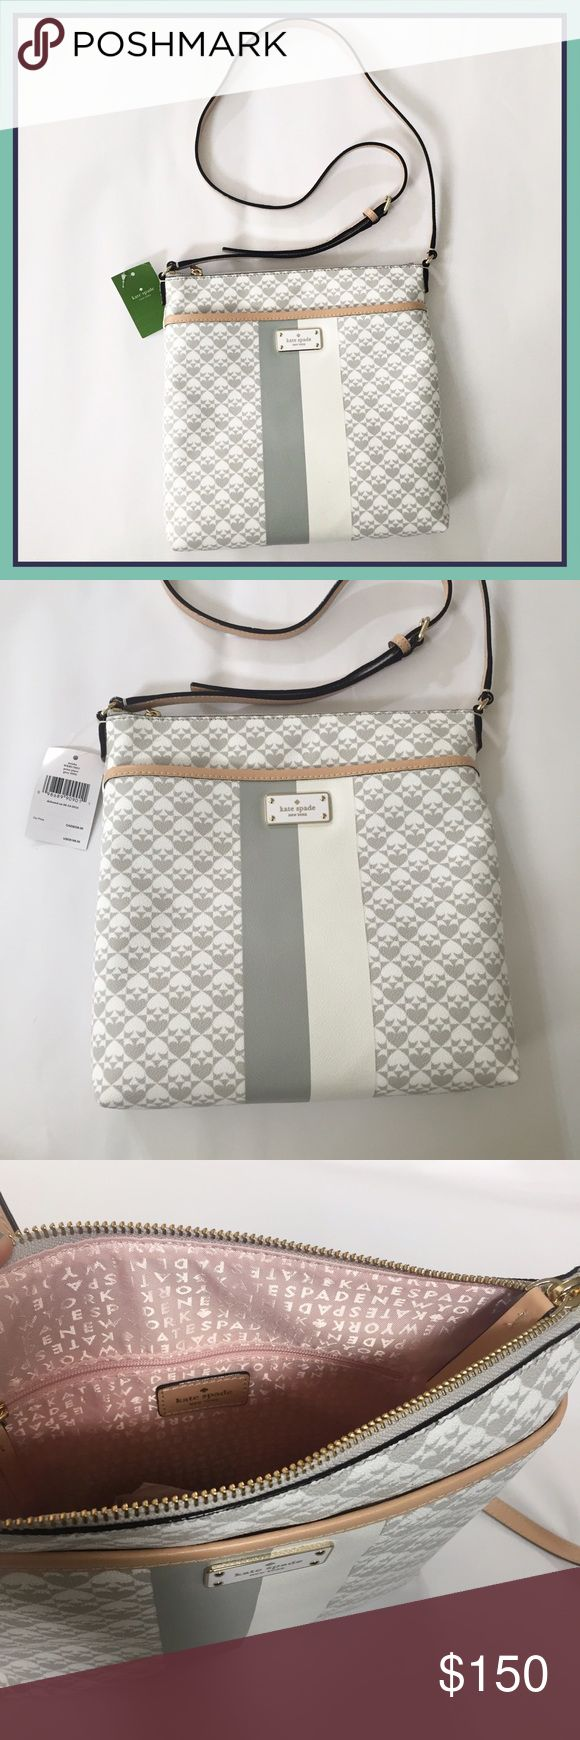 kate spade bag This kate bag is effortlessly classy and stylish. Features: Grey and white spade design with tan straps and light pink inside, large outer pocket, and adjustable strap. Comes with care card. kate spade Bags